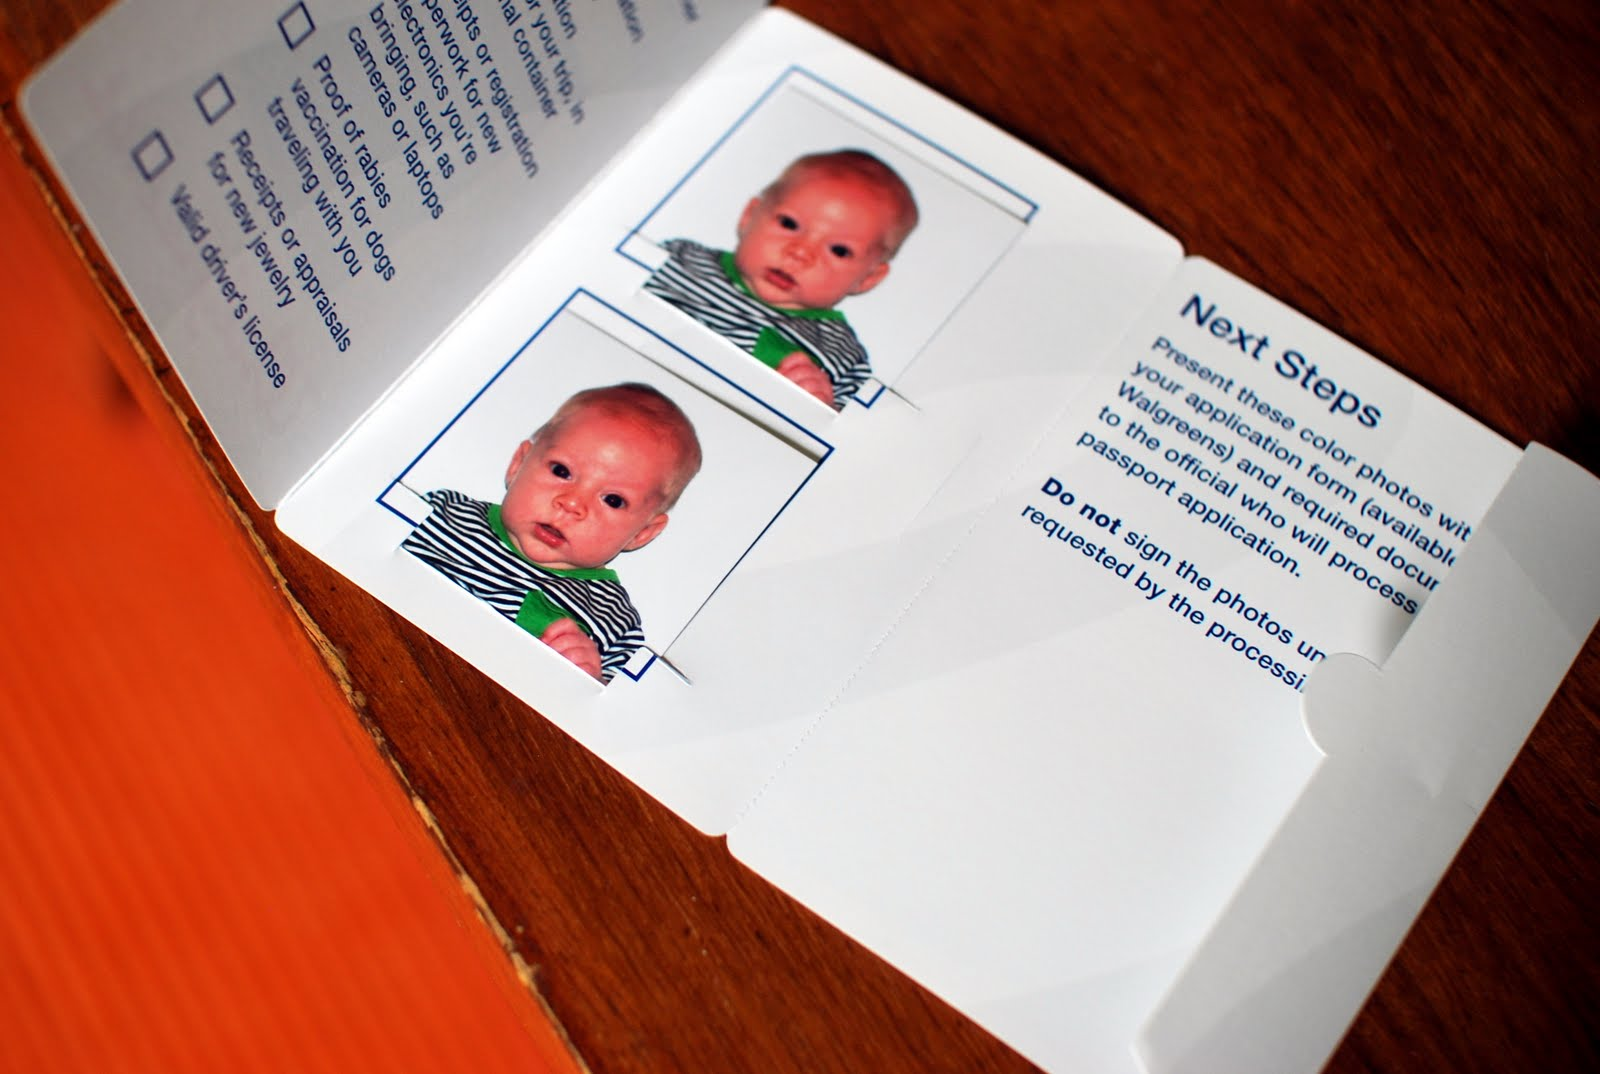 Feeding the soil how to get a baby passport how to get a baby passport xflitez Image collections